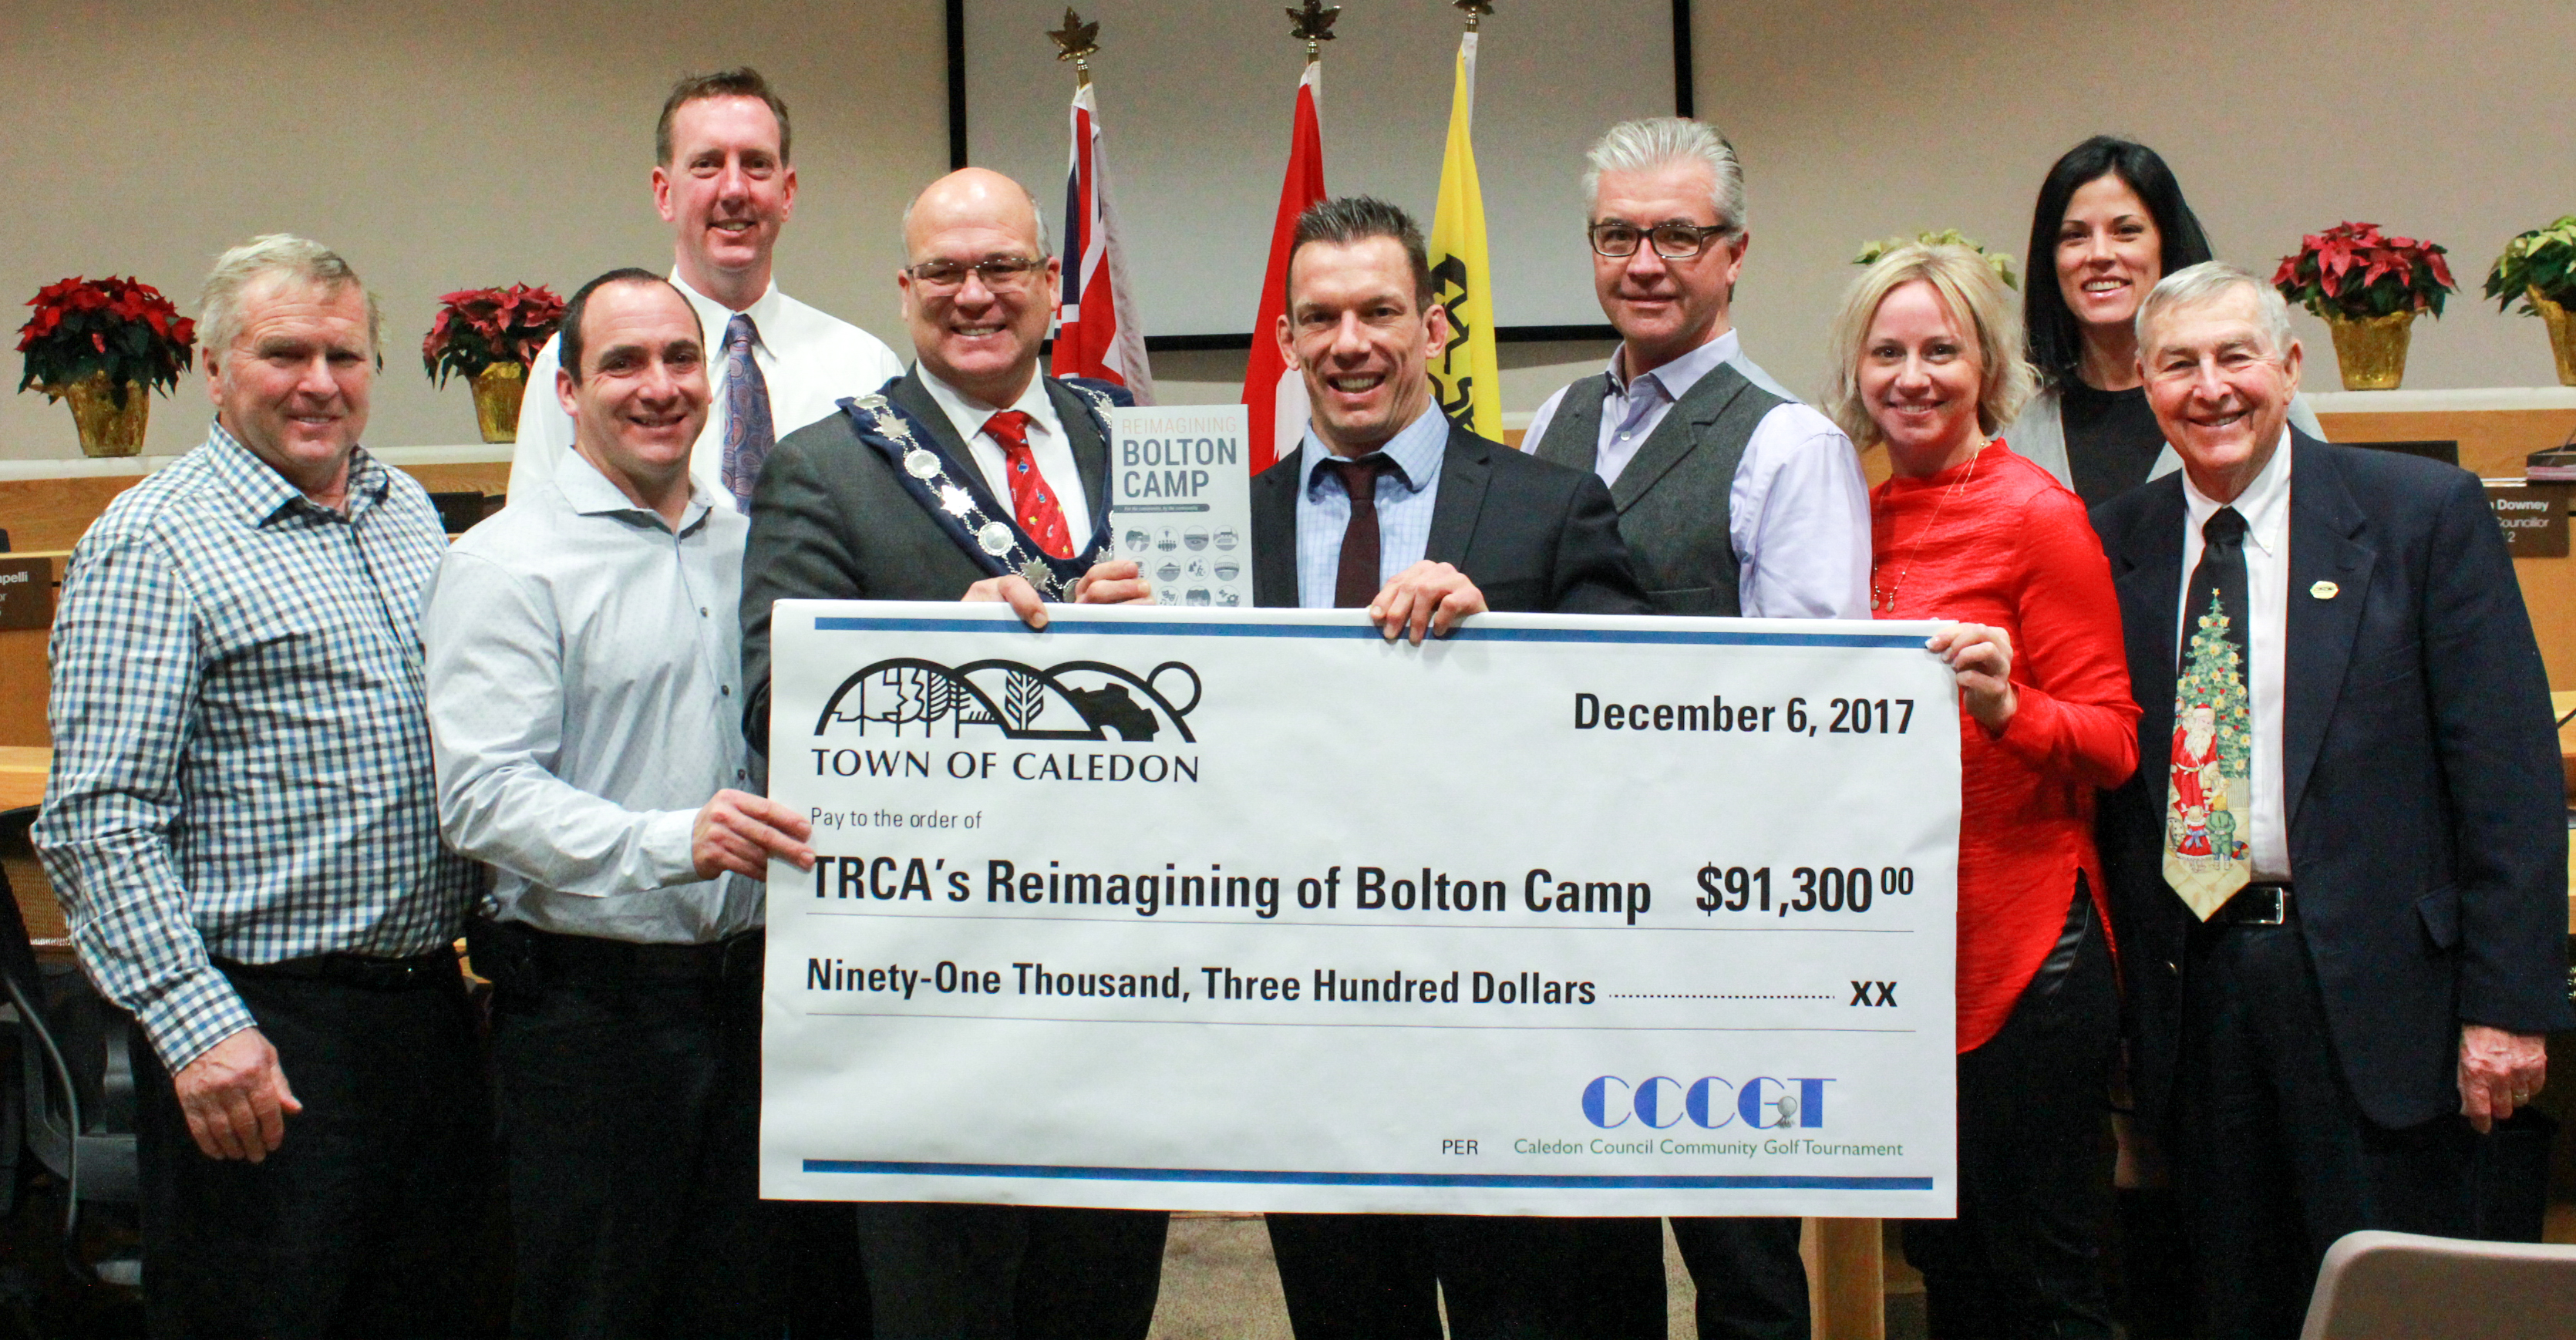 Cheque presentation (December 6, 2017)